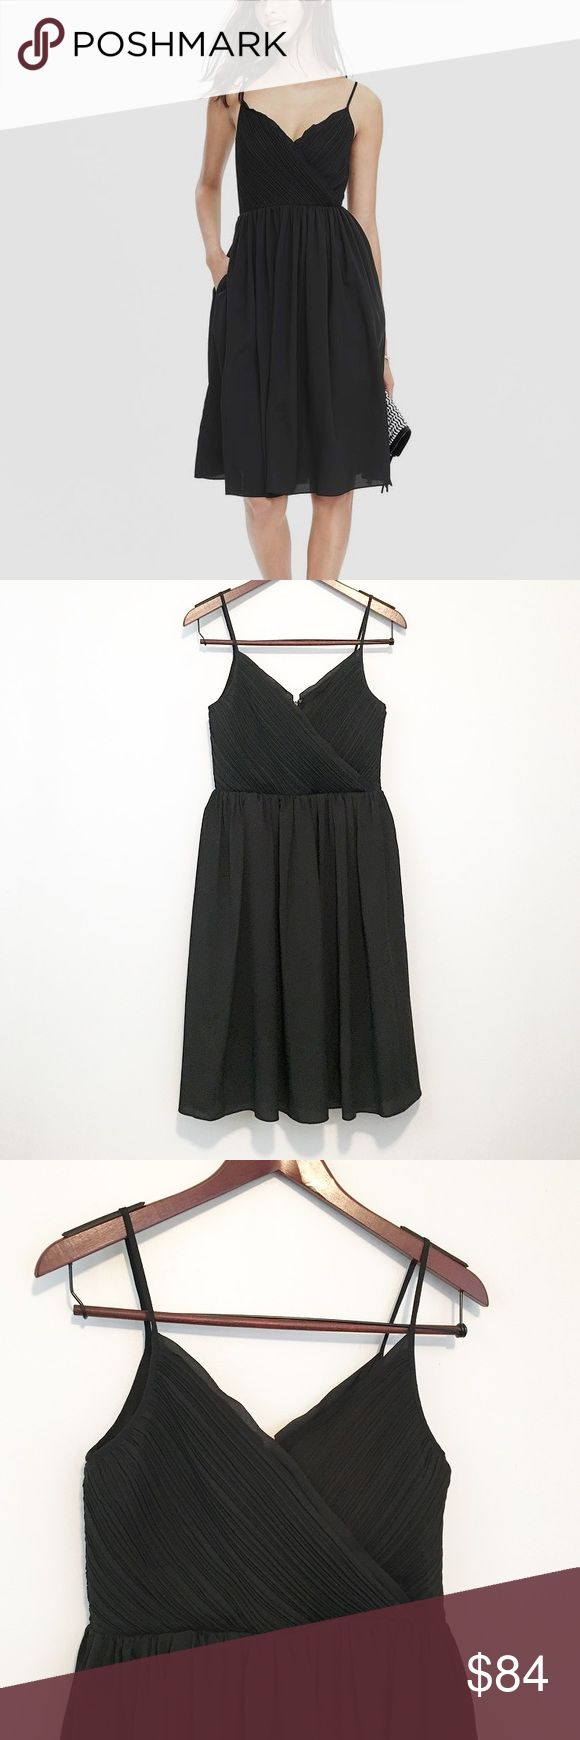 Banana Republic Strappy Vee Semi-Formal Sundress How gorgeous is this?! I really want to alter it down to my size, but I know I shouldn't. It's perfect for all kinds of occasions - the definition of a little black dress! The bust is kind of ruched or ruffled, and it's just all over stunning. But y'all, it's got pockets!!! 😍 Banana Republic Dresses Midi